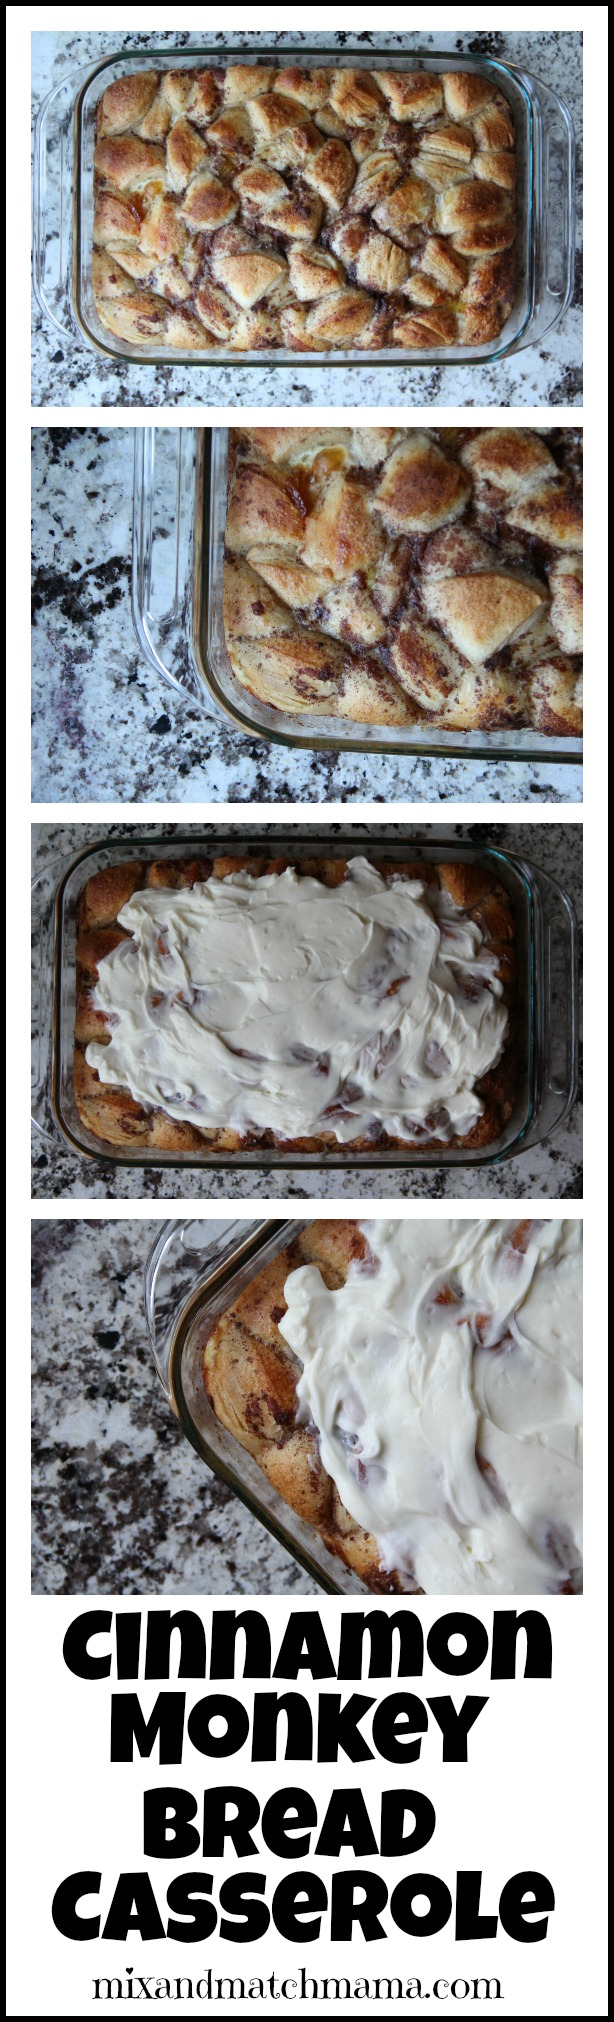 Monkey Bread Casserole